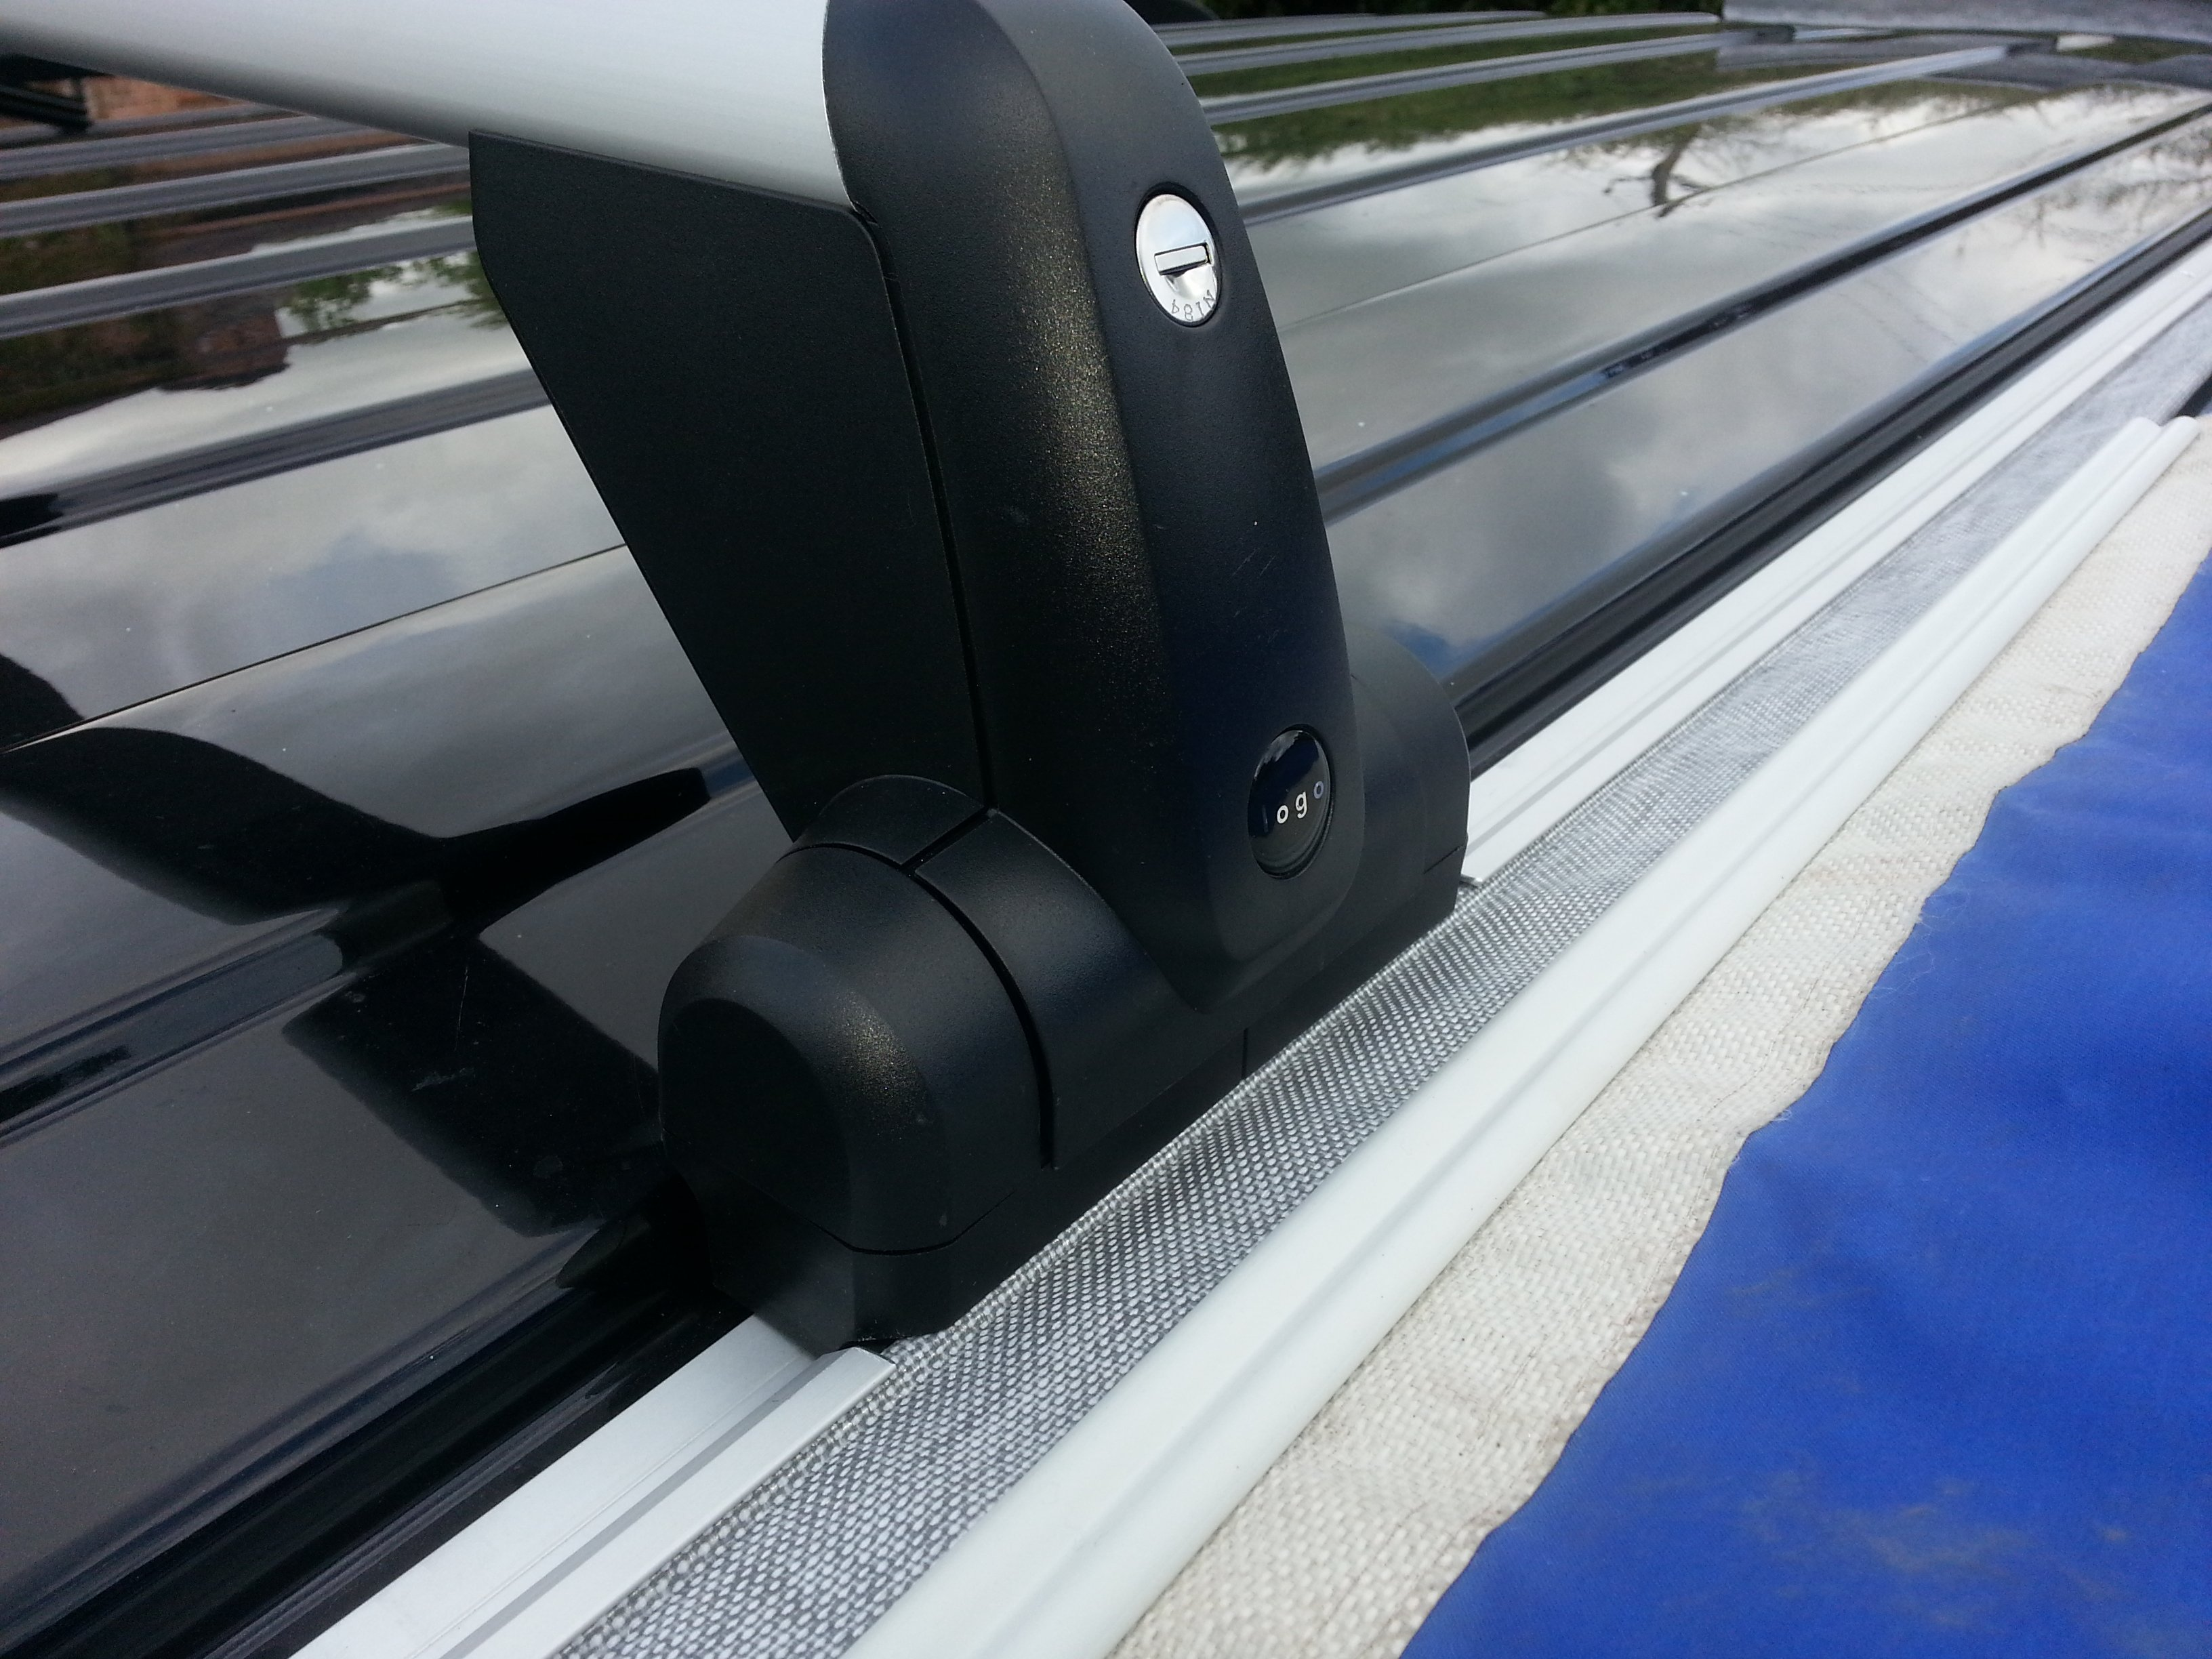 VW T5 Bolted Awning Rail VW Logo Roof Rack - Camper Essentials